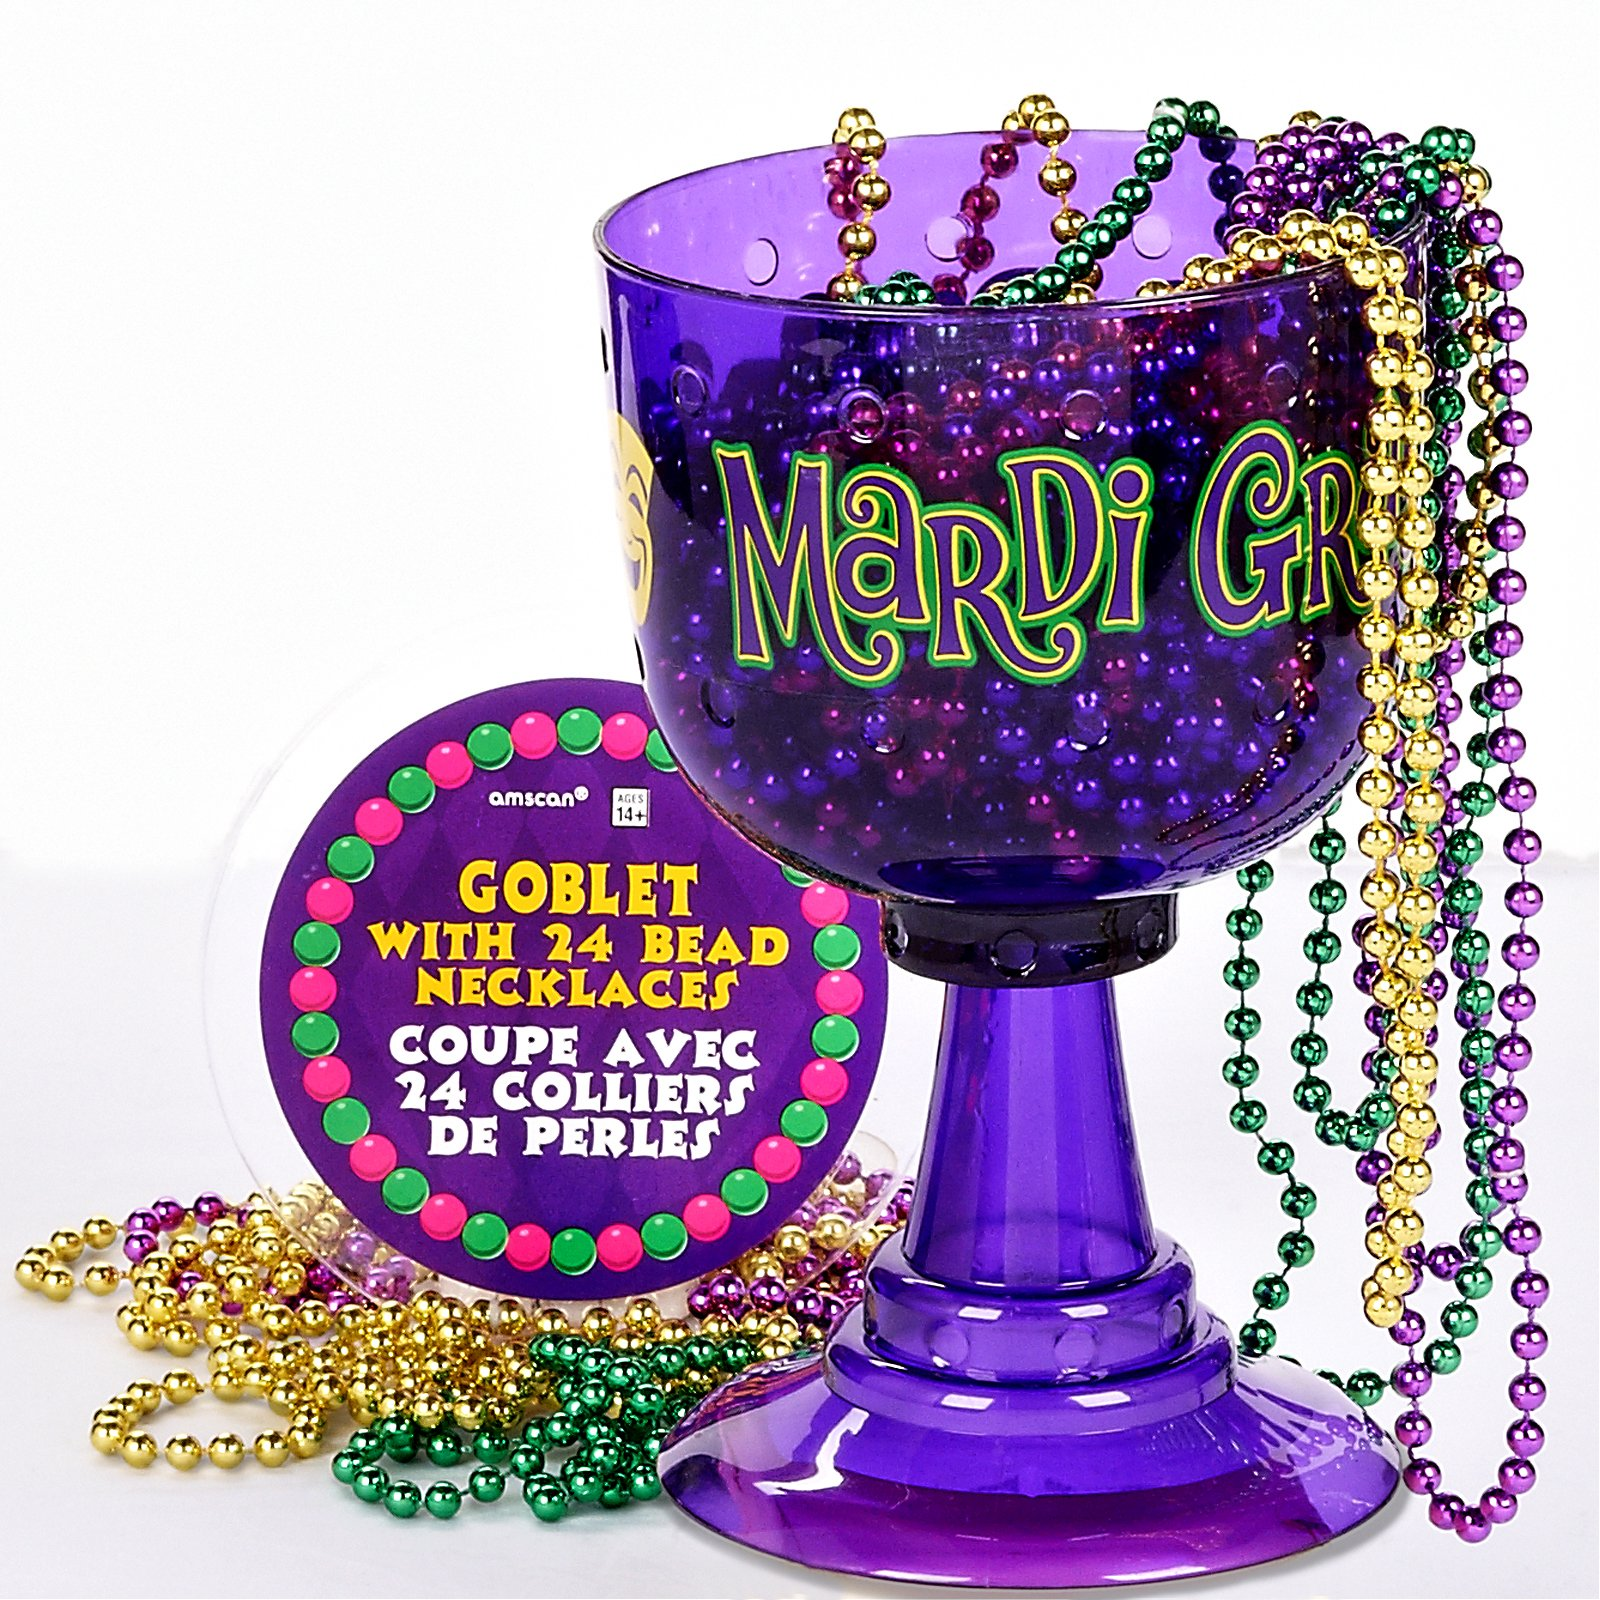 Mardi Gras Cup with Bead Necklaces